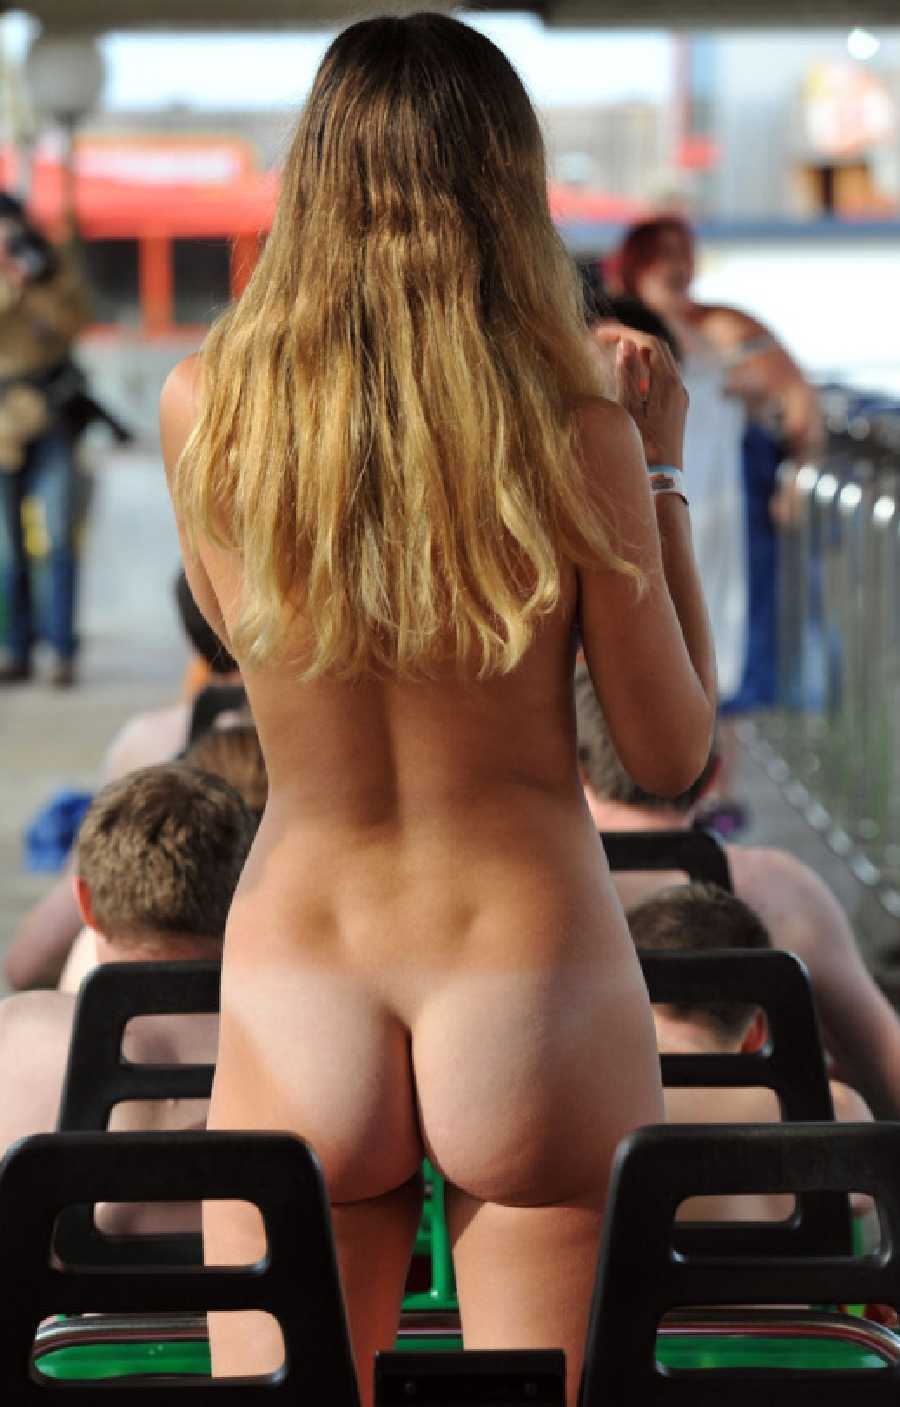 Nude girls on roller coaster free porn fucking photos